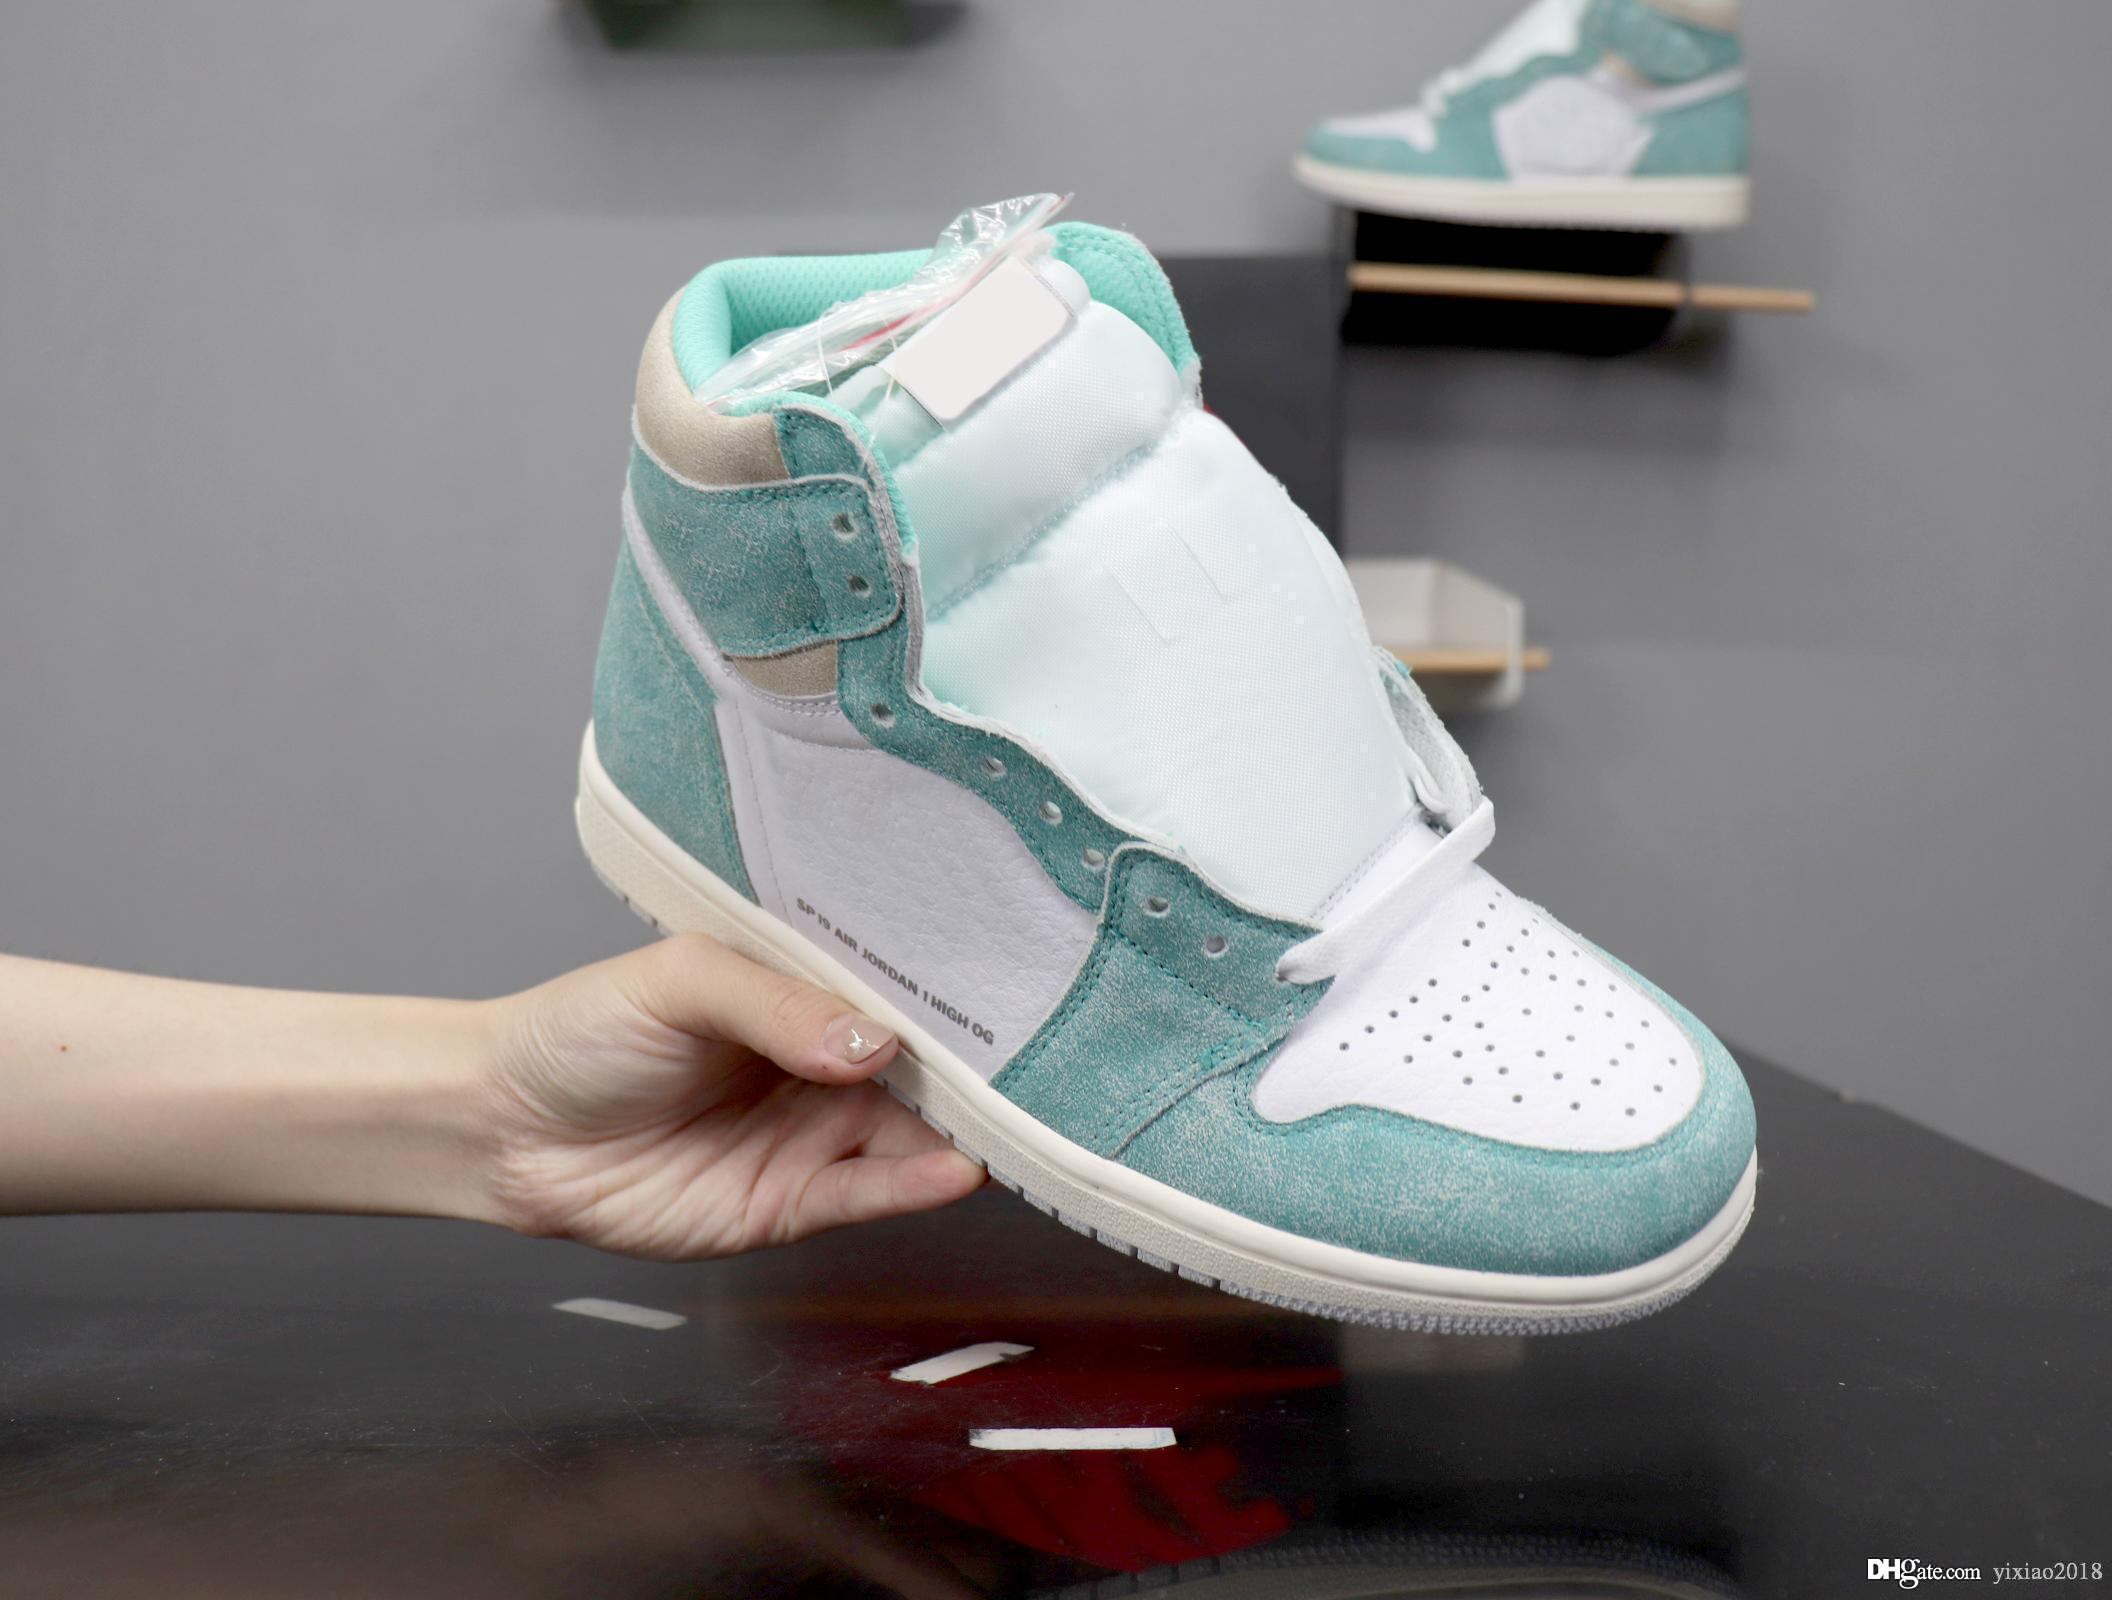 a15db745a549a1 2019 Fashion 1 1s Turbo Green Retro Basketball Shoes Suede Lake Green Teal  Designer Mens Athletic Trainers Casual Shoes Sneakers With Box Wedges Shoes  Black ...